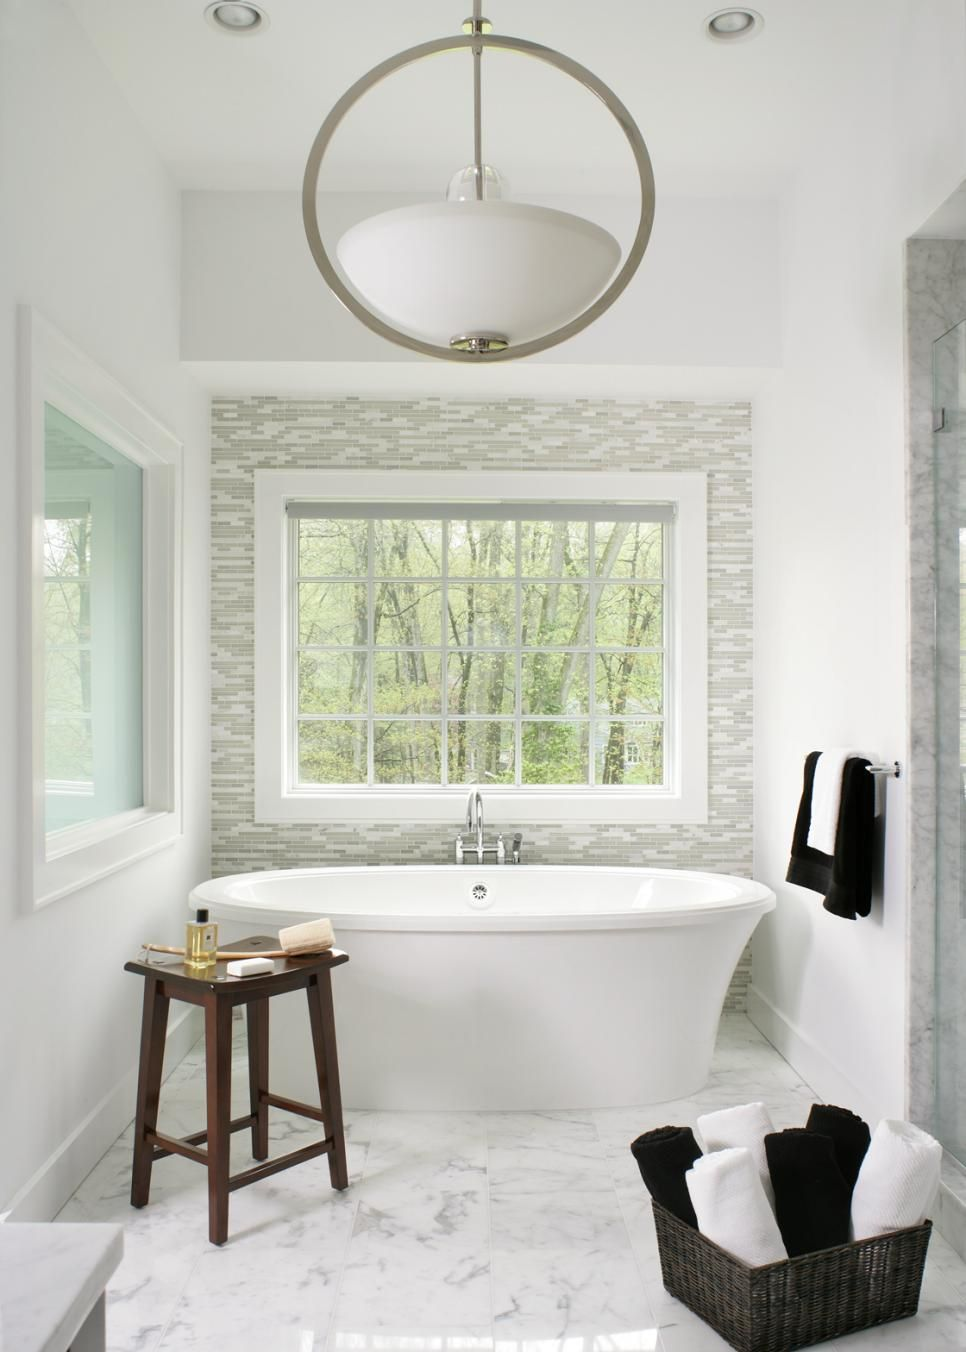 Romantic Bathroom Lighting Ideas | Contemporary bathrooms, Natural ...